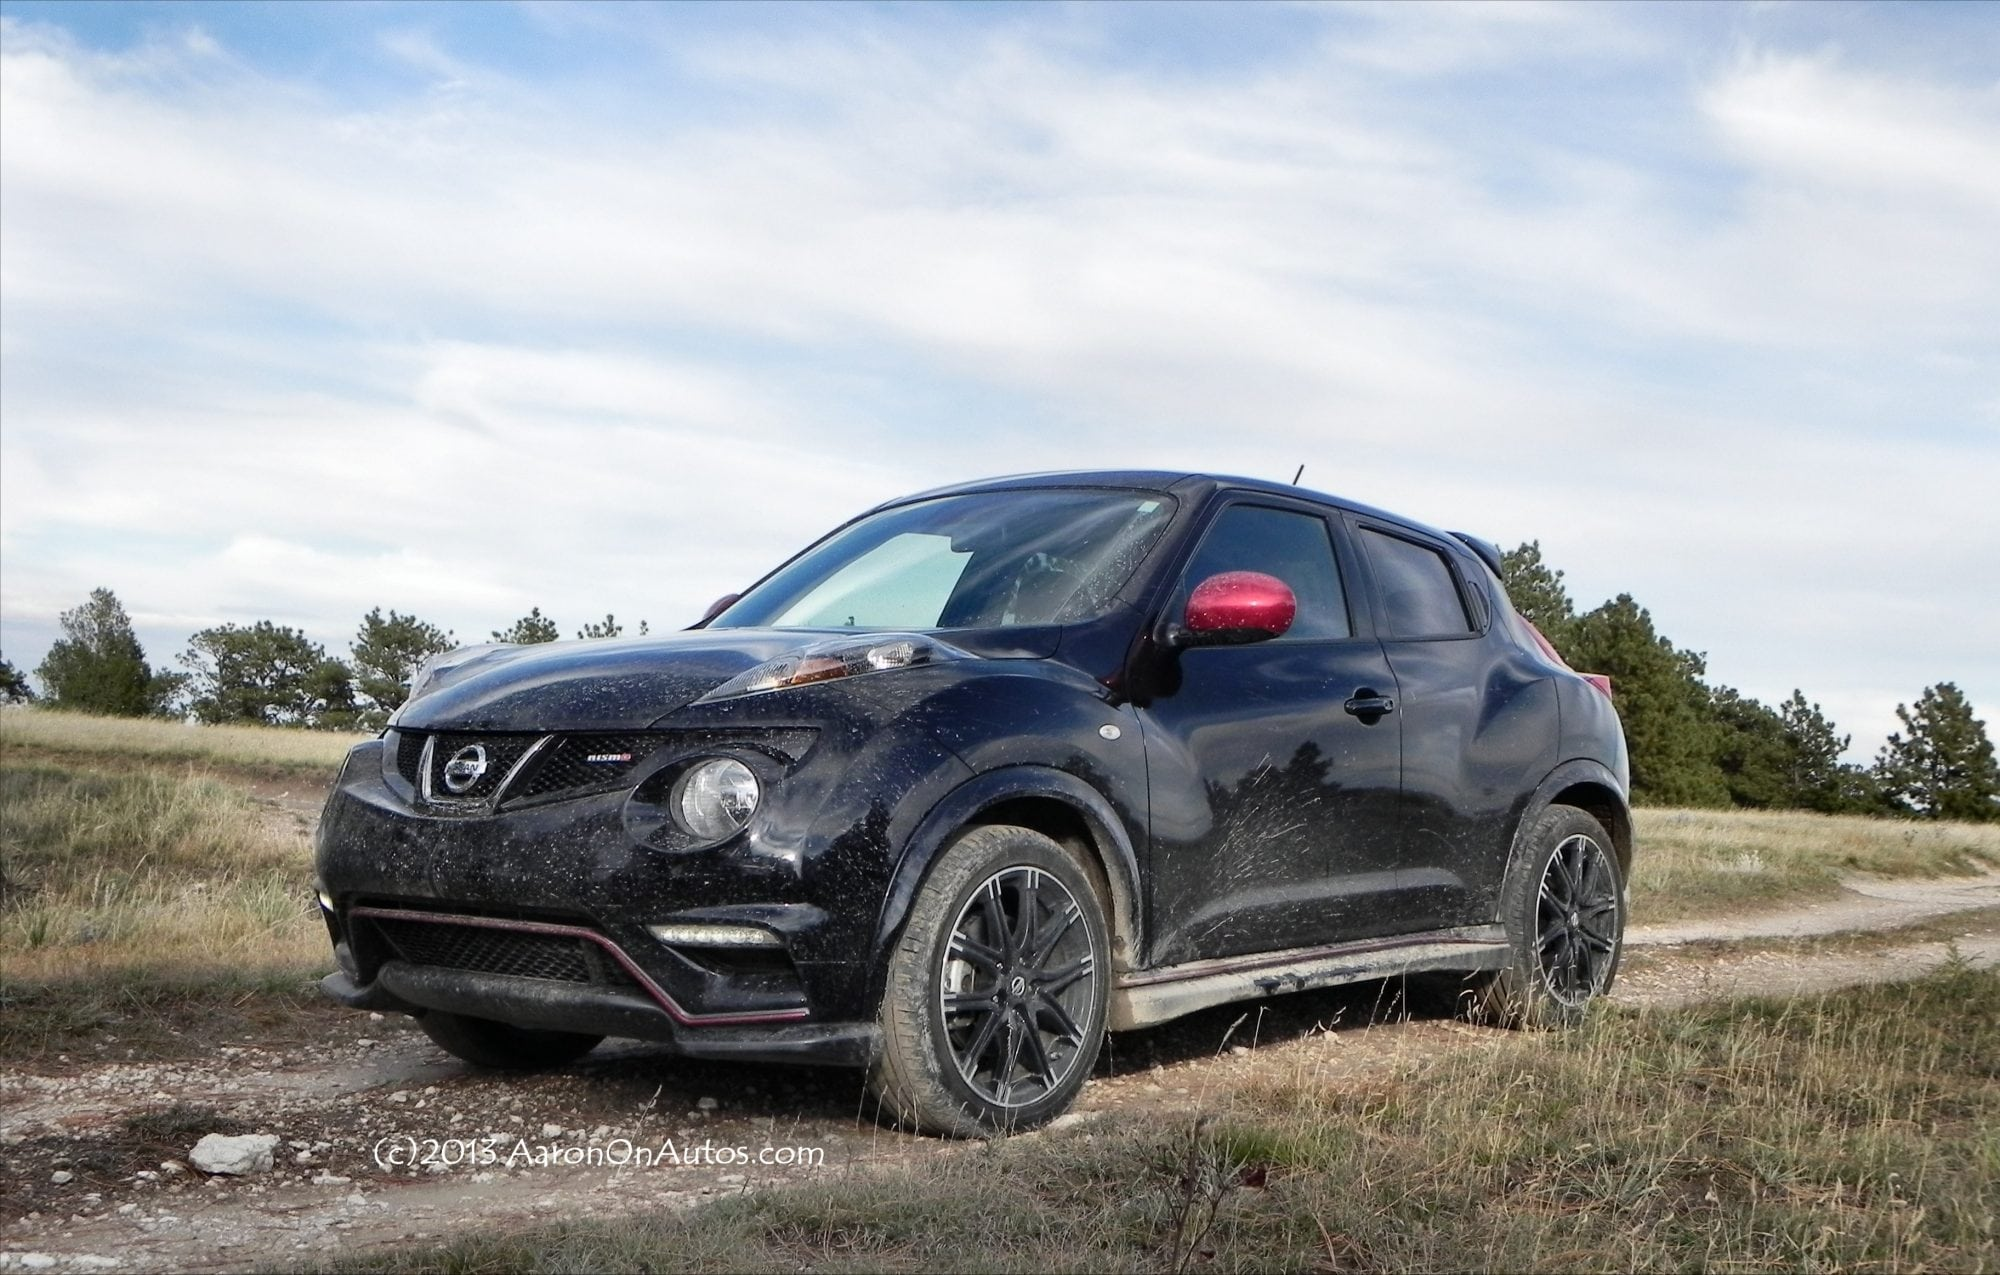 2013 Nissan Juke NISMO – fun times with dirt rally madness